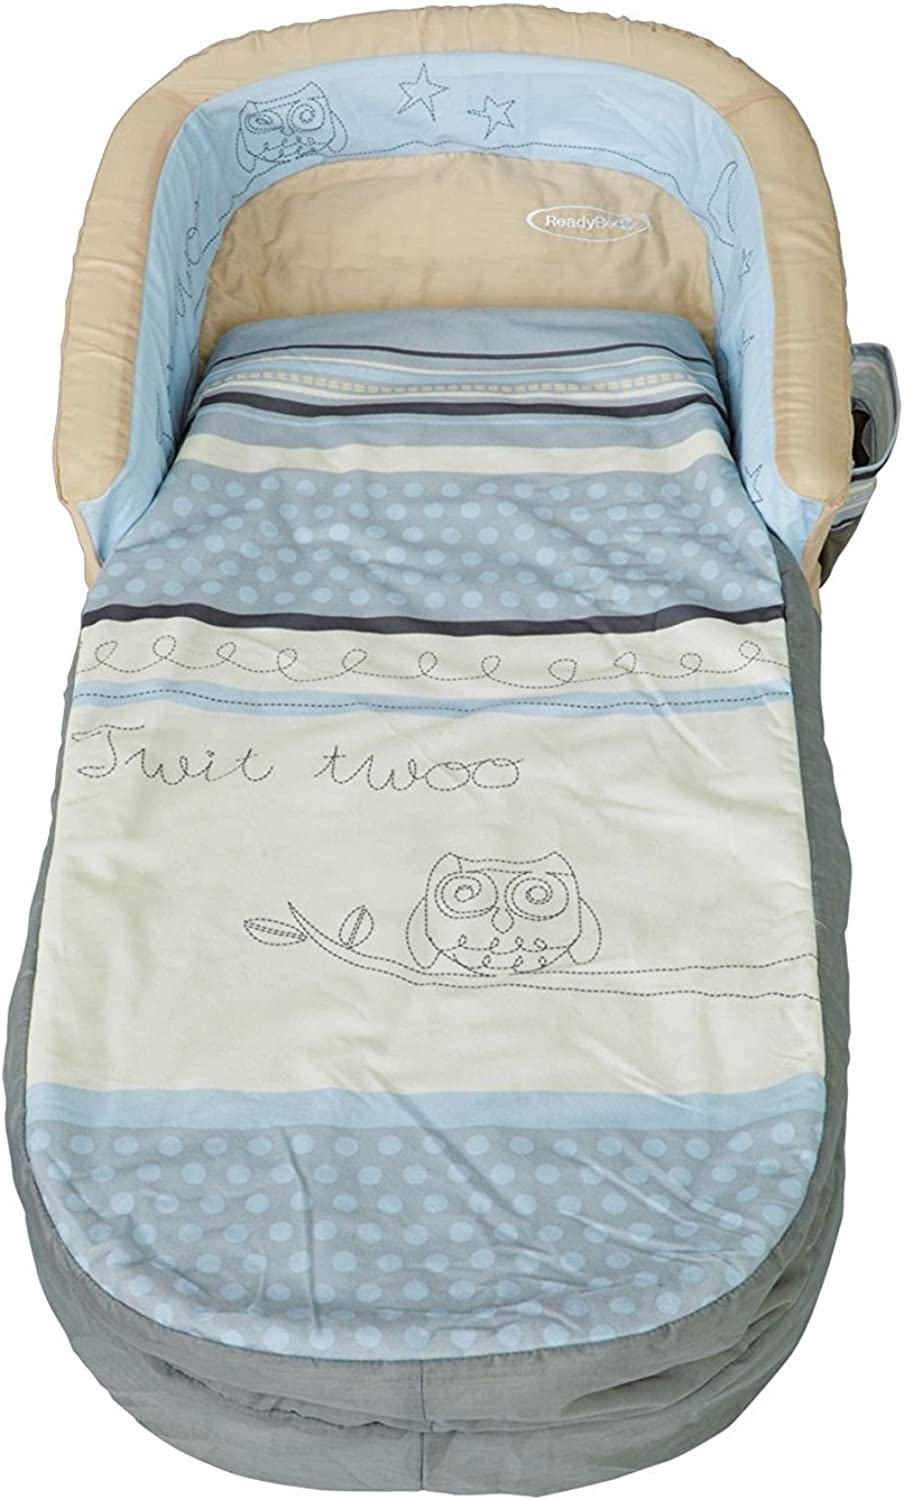 My First ReadyBed, Sleepytime Owl (bluee) by Words Apart, Ages 18 Months - 3 Years